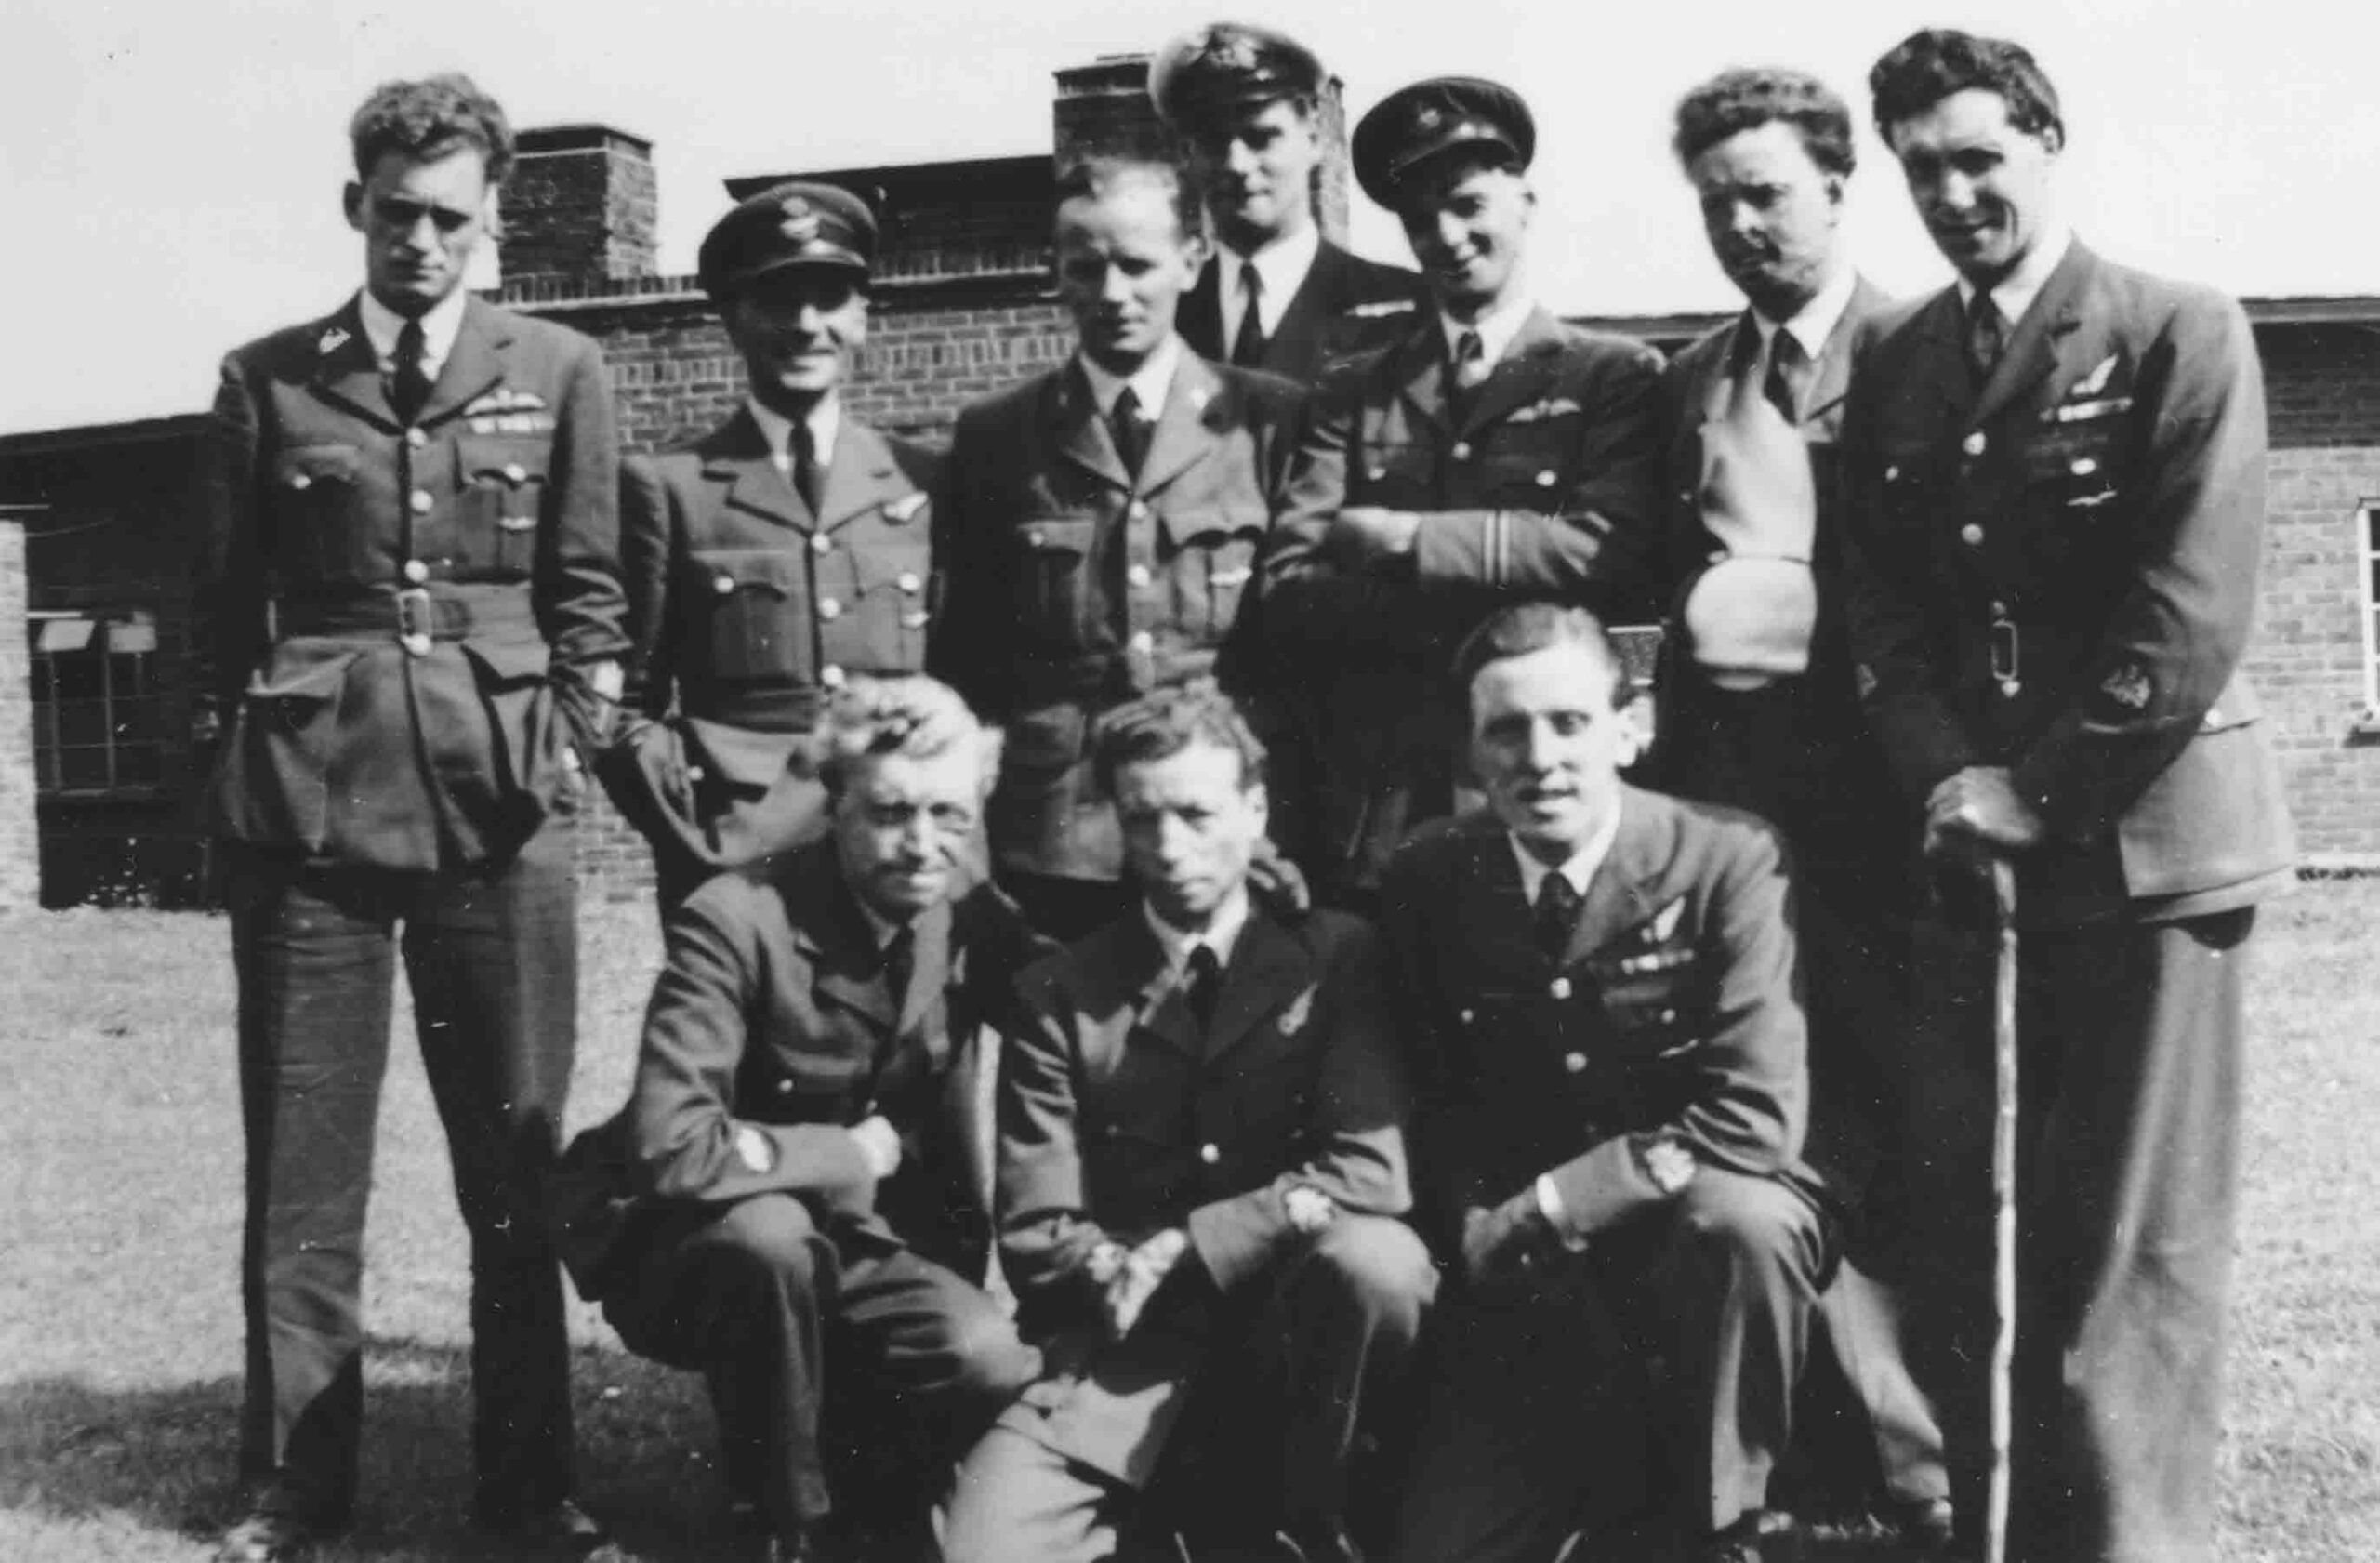 PC97/24/6 RAF personnel returning to East Grinstead after a trip to Switzerland, 1946